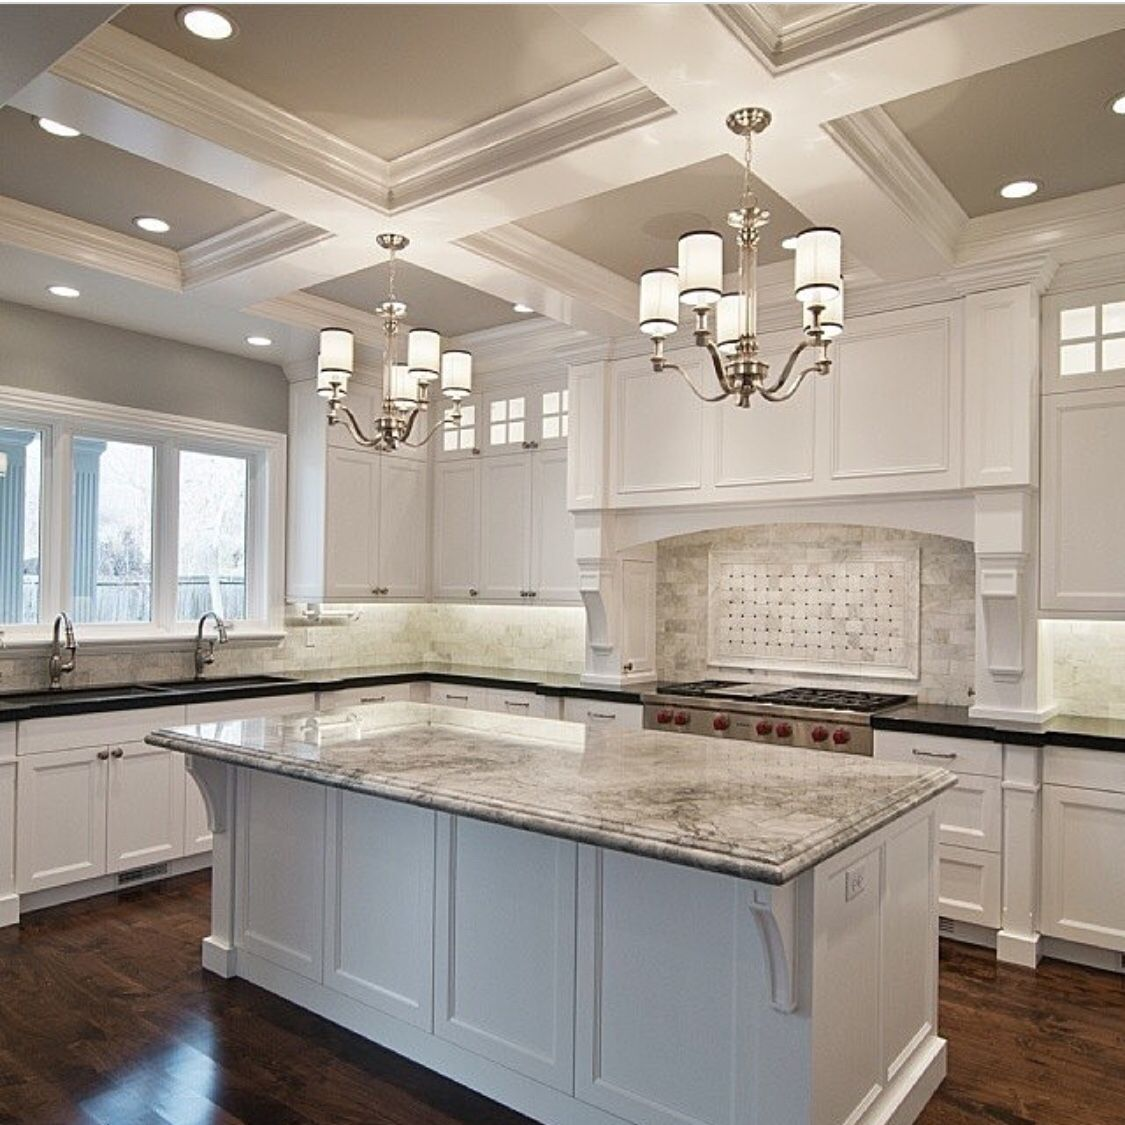 Best White Kitchen Dark Floors Large Island Island Design 400 x 300